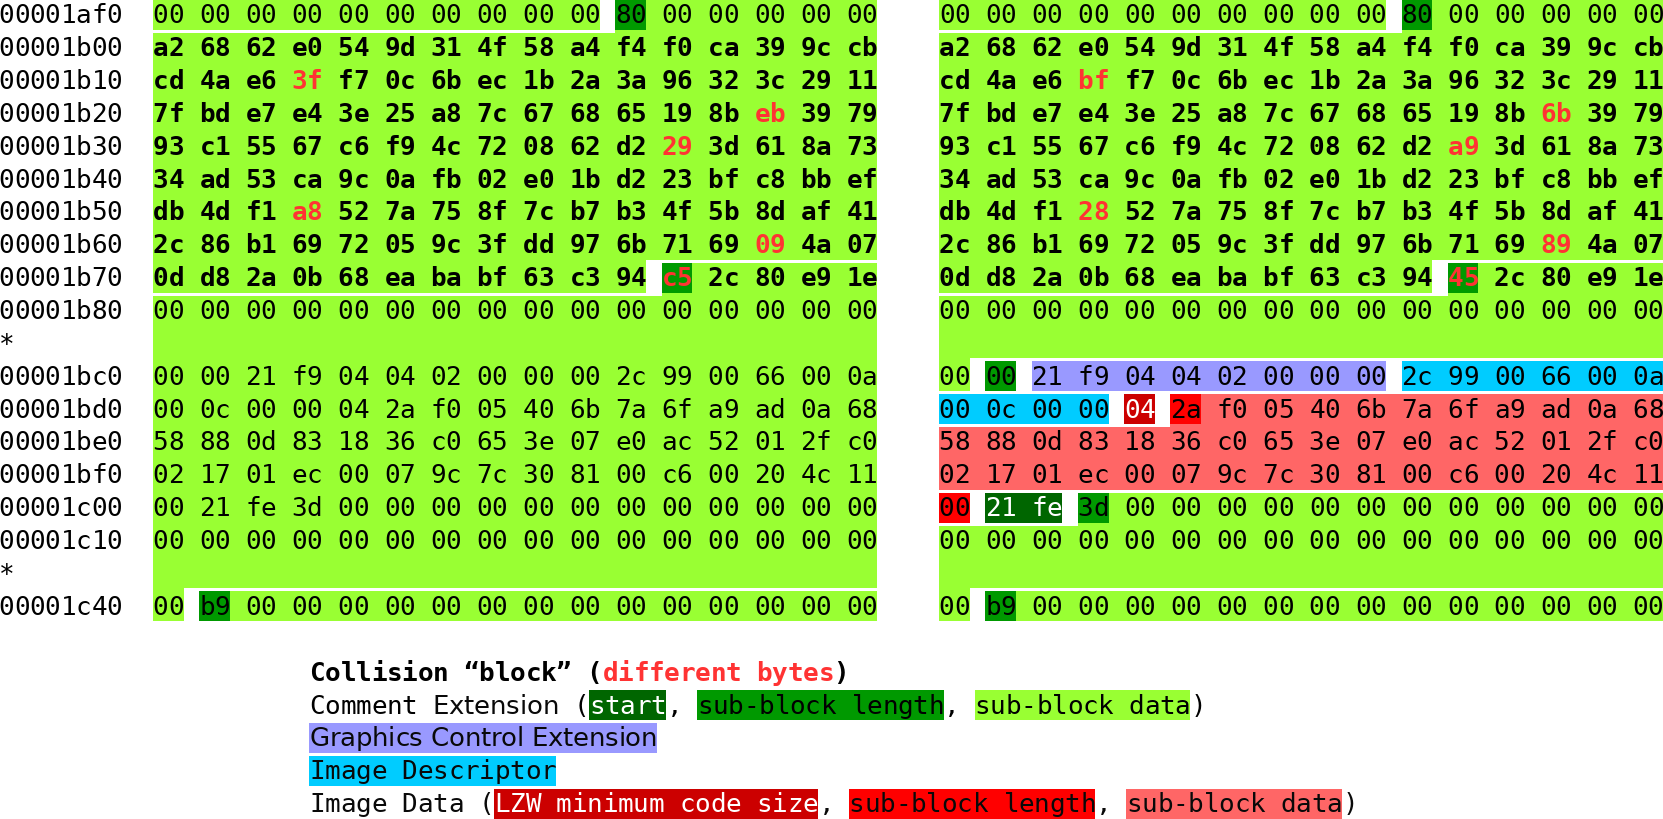 hexdump of two version of a character